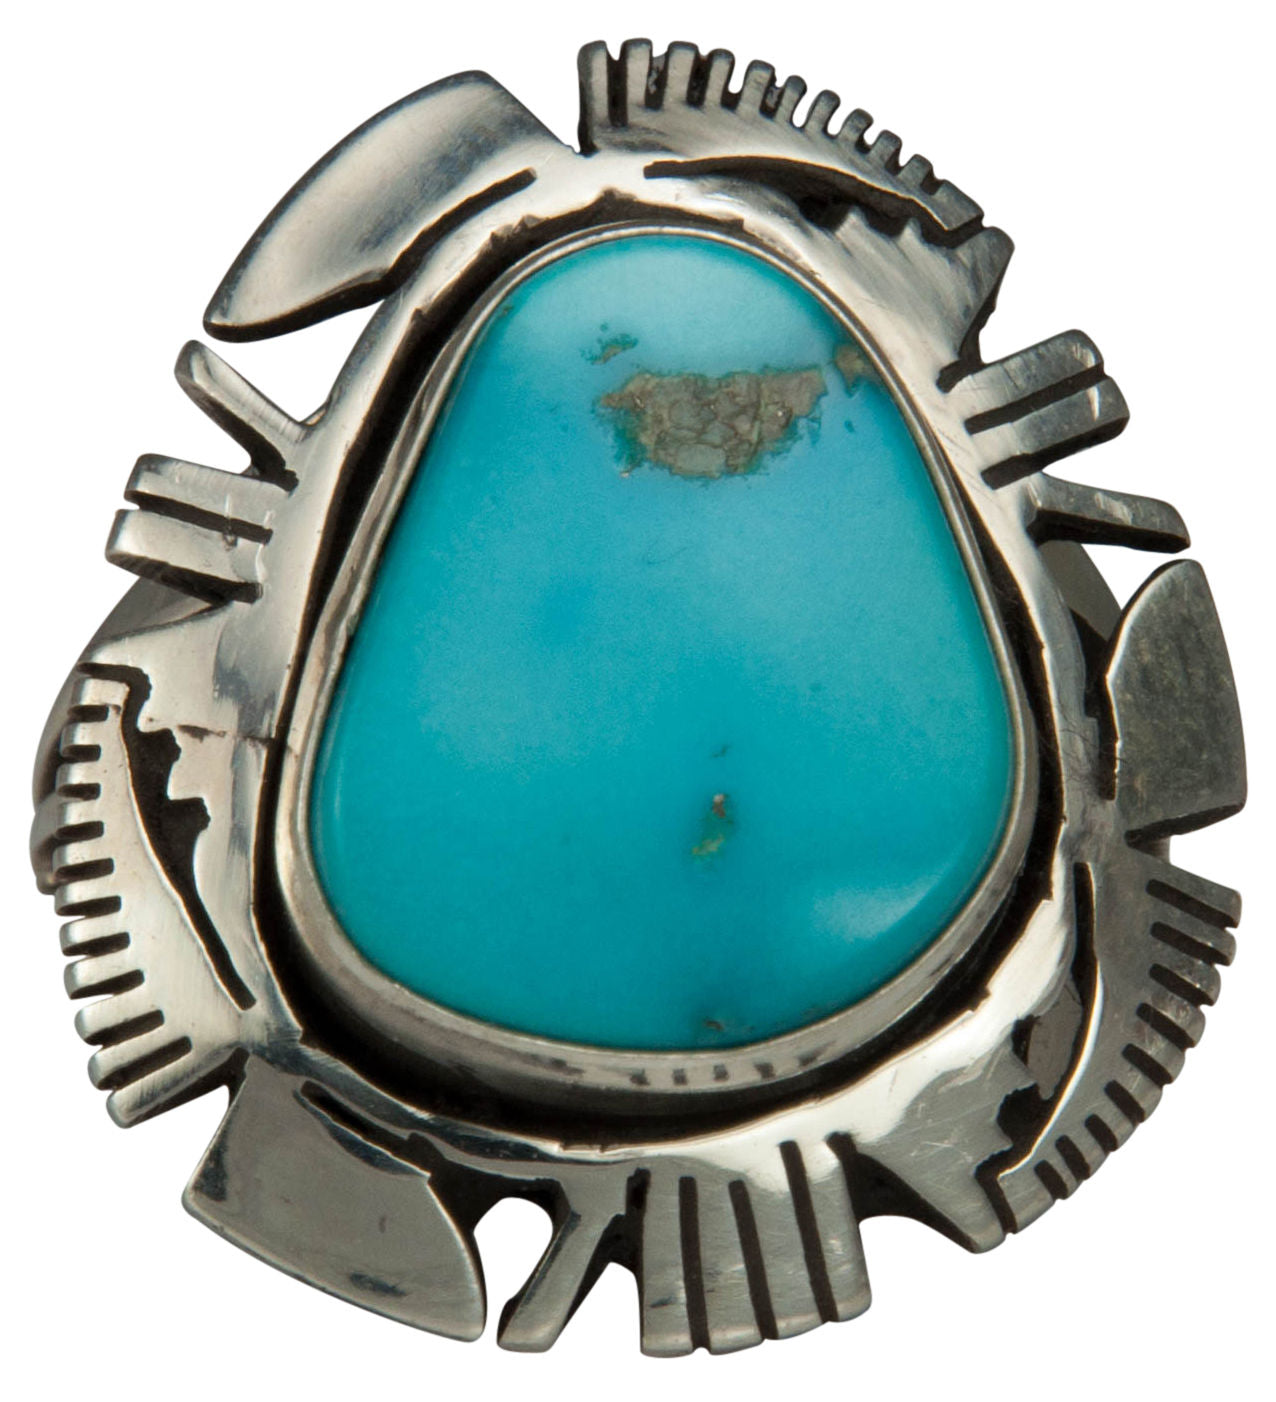 Nickle Free Round with Braid Genuine Sleeping Beauty Turquoise Ring Native American Handmade 925 Sterling Silver Sizes 3-5.5